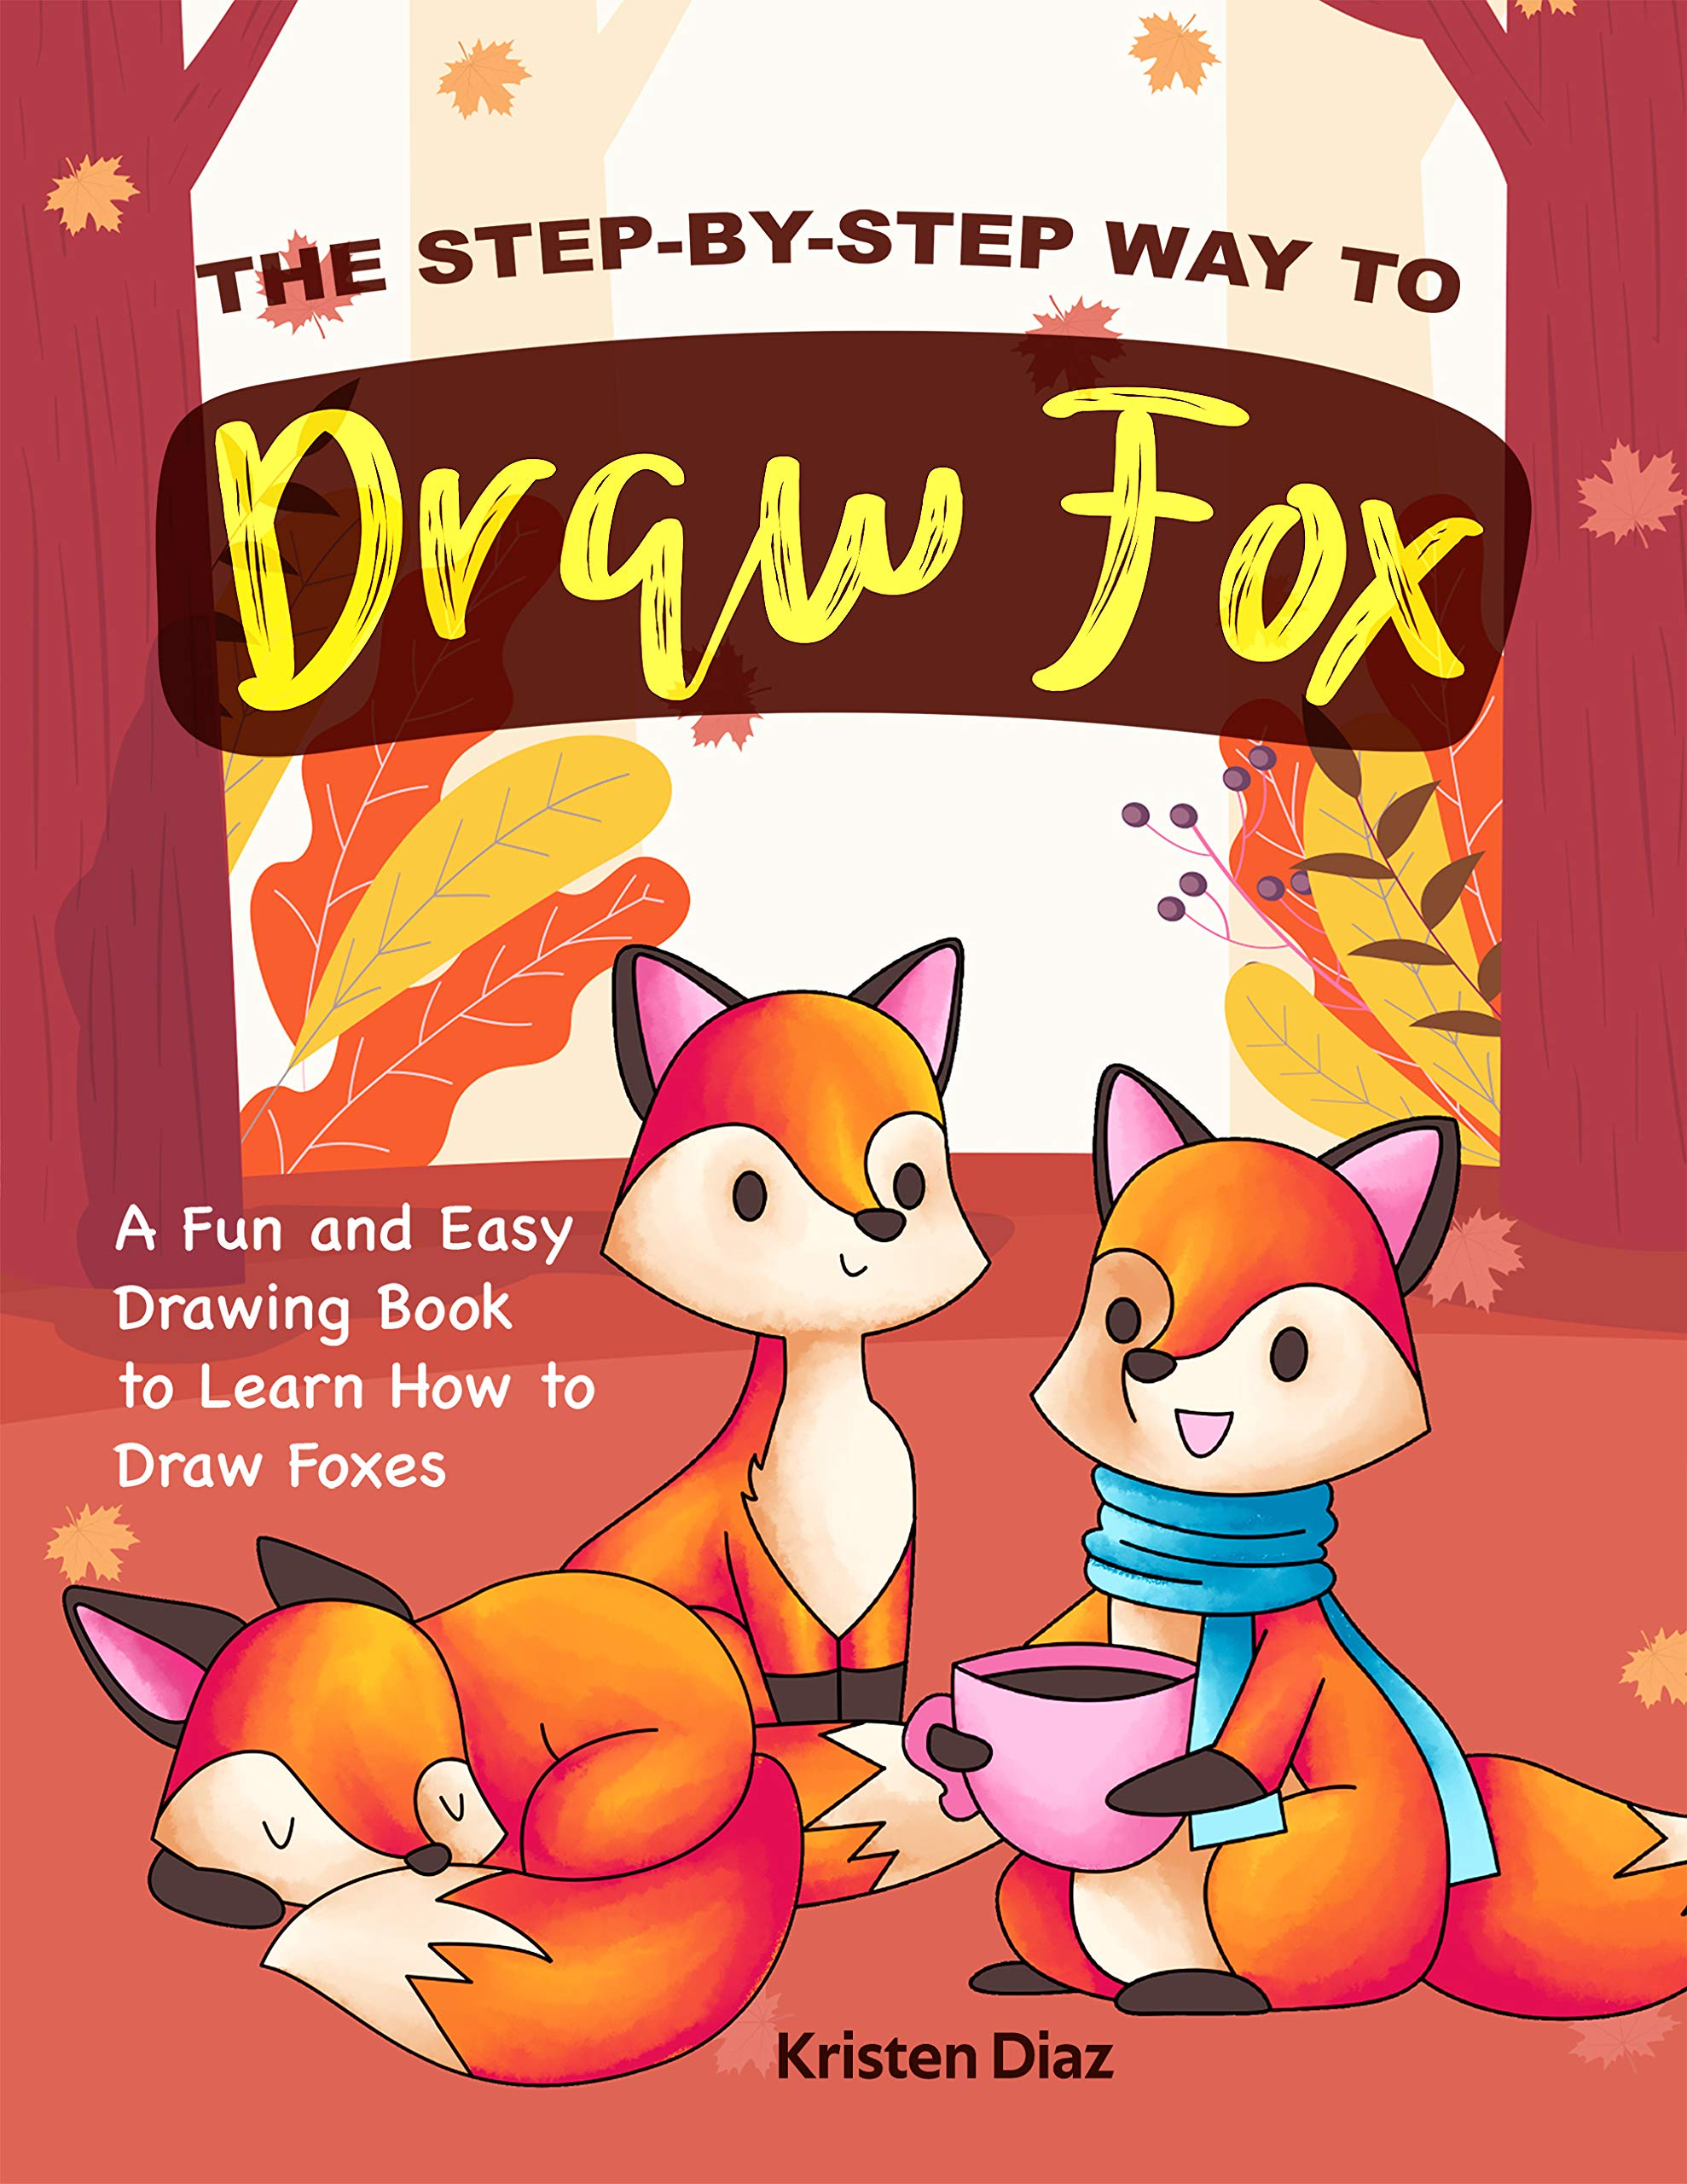 The Step-by-Step Way to Draw Fox: A Fun and Easy Drawing Book to Learn How to Draw Foxes (English Edition)